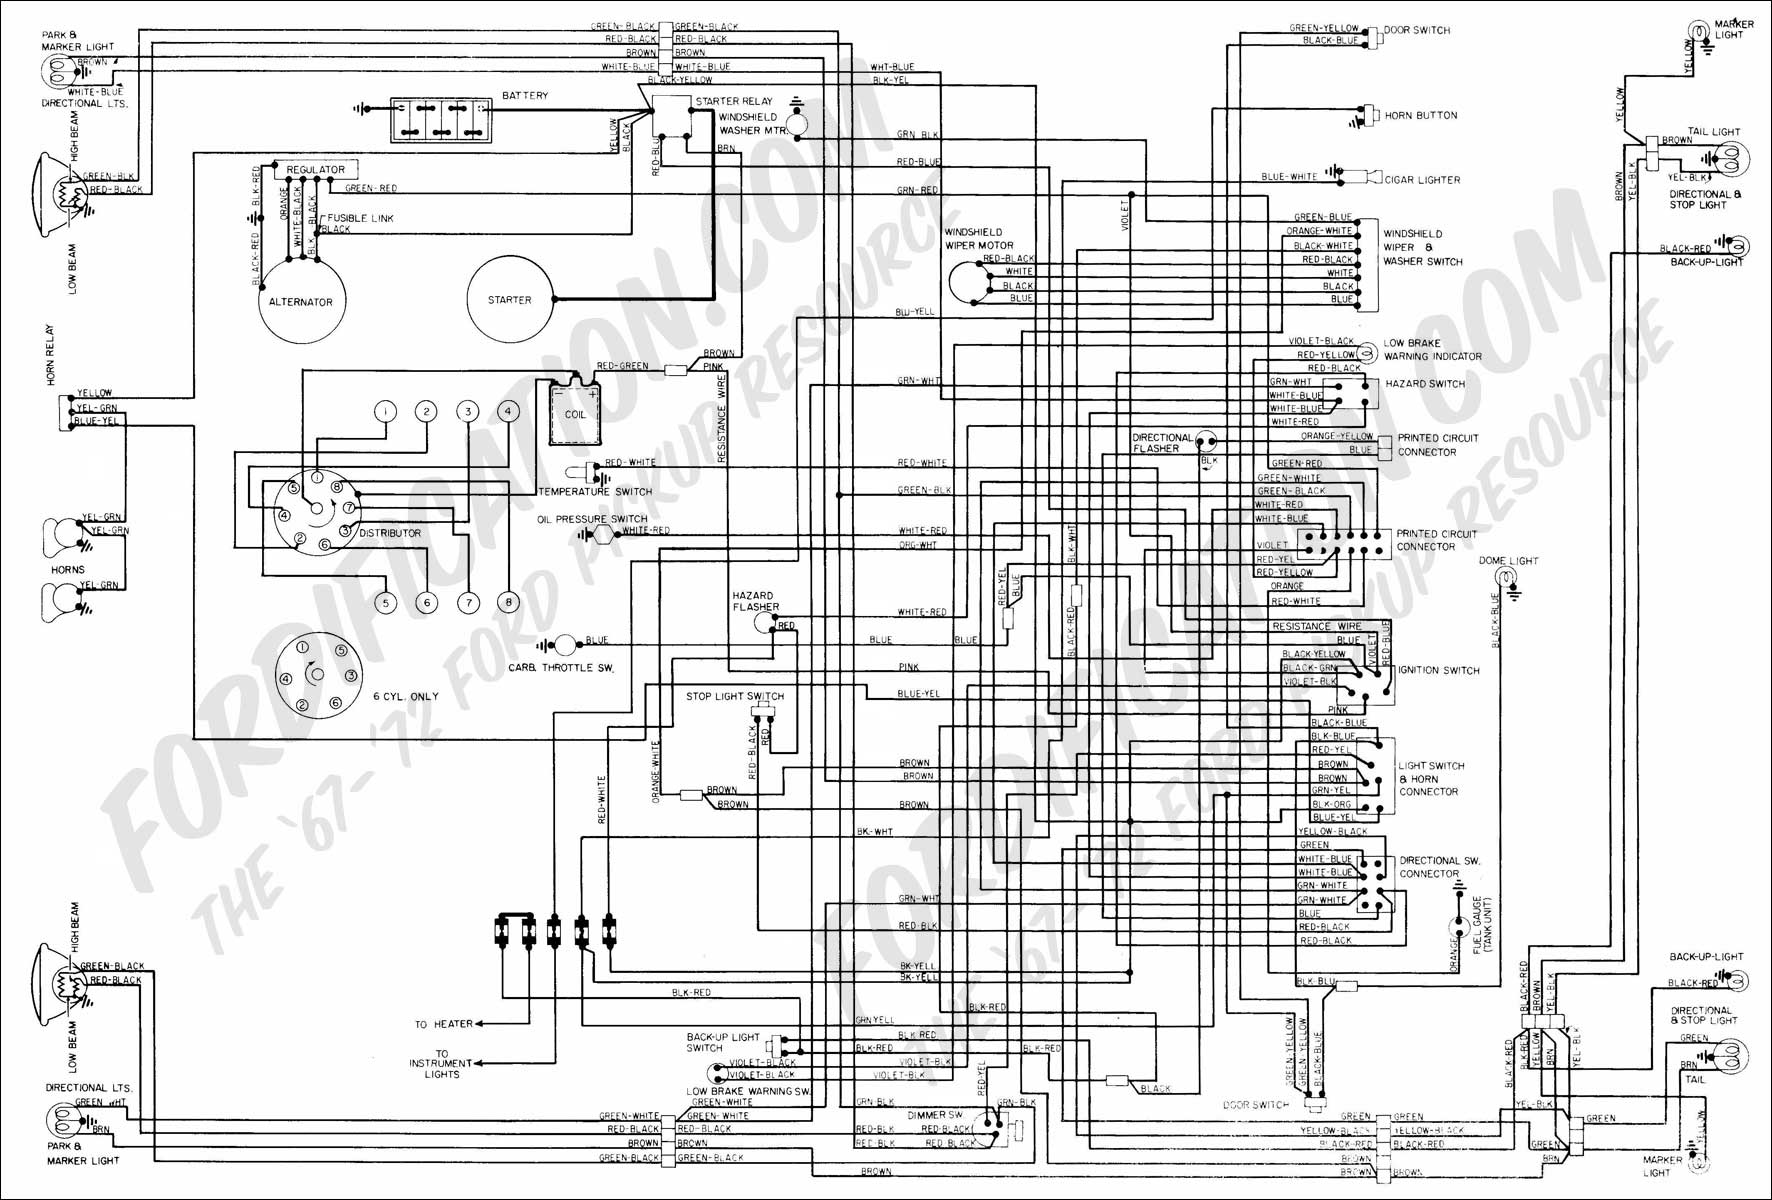 duplex switch wiring diagram php ford factory wiring diagrams 1968 ford wiring diagrams 1968 wiring diagrams